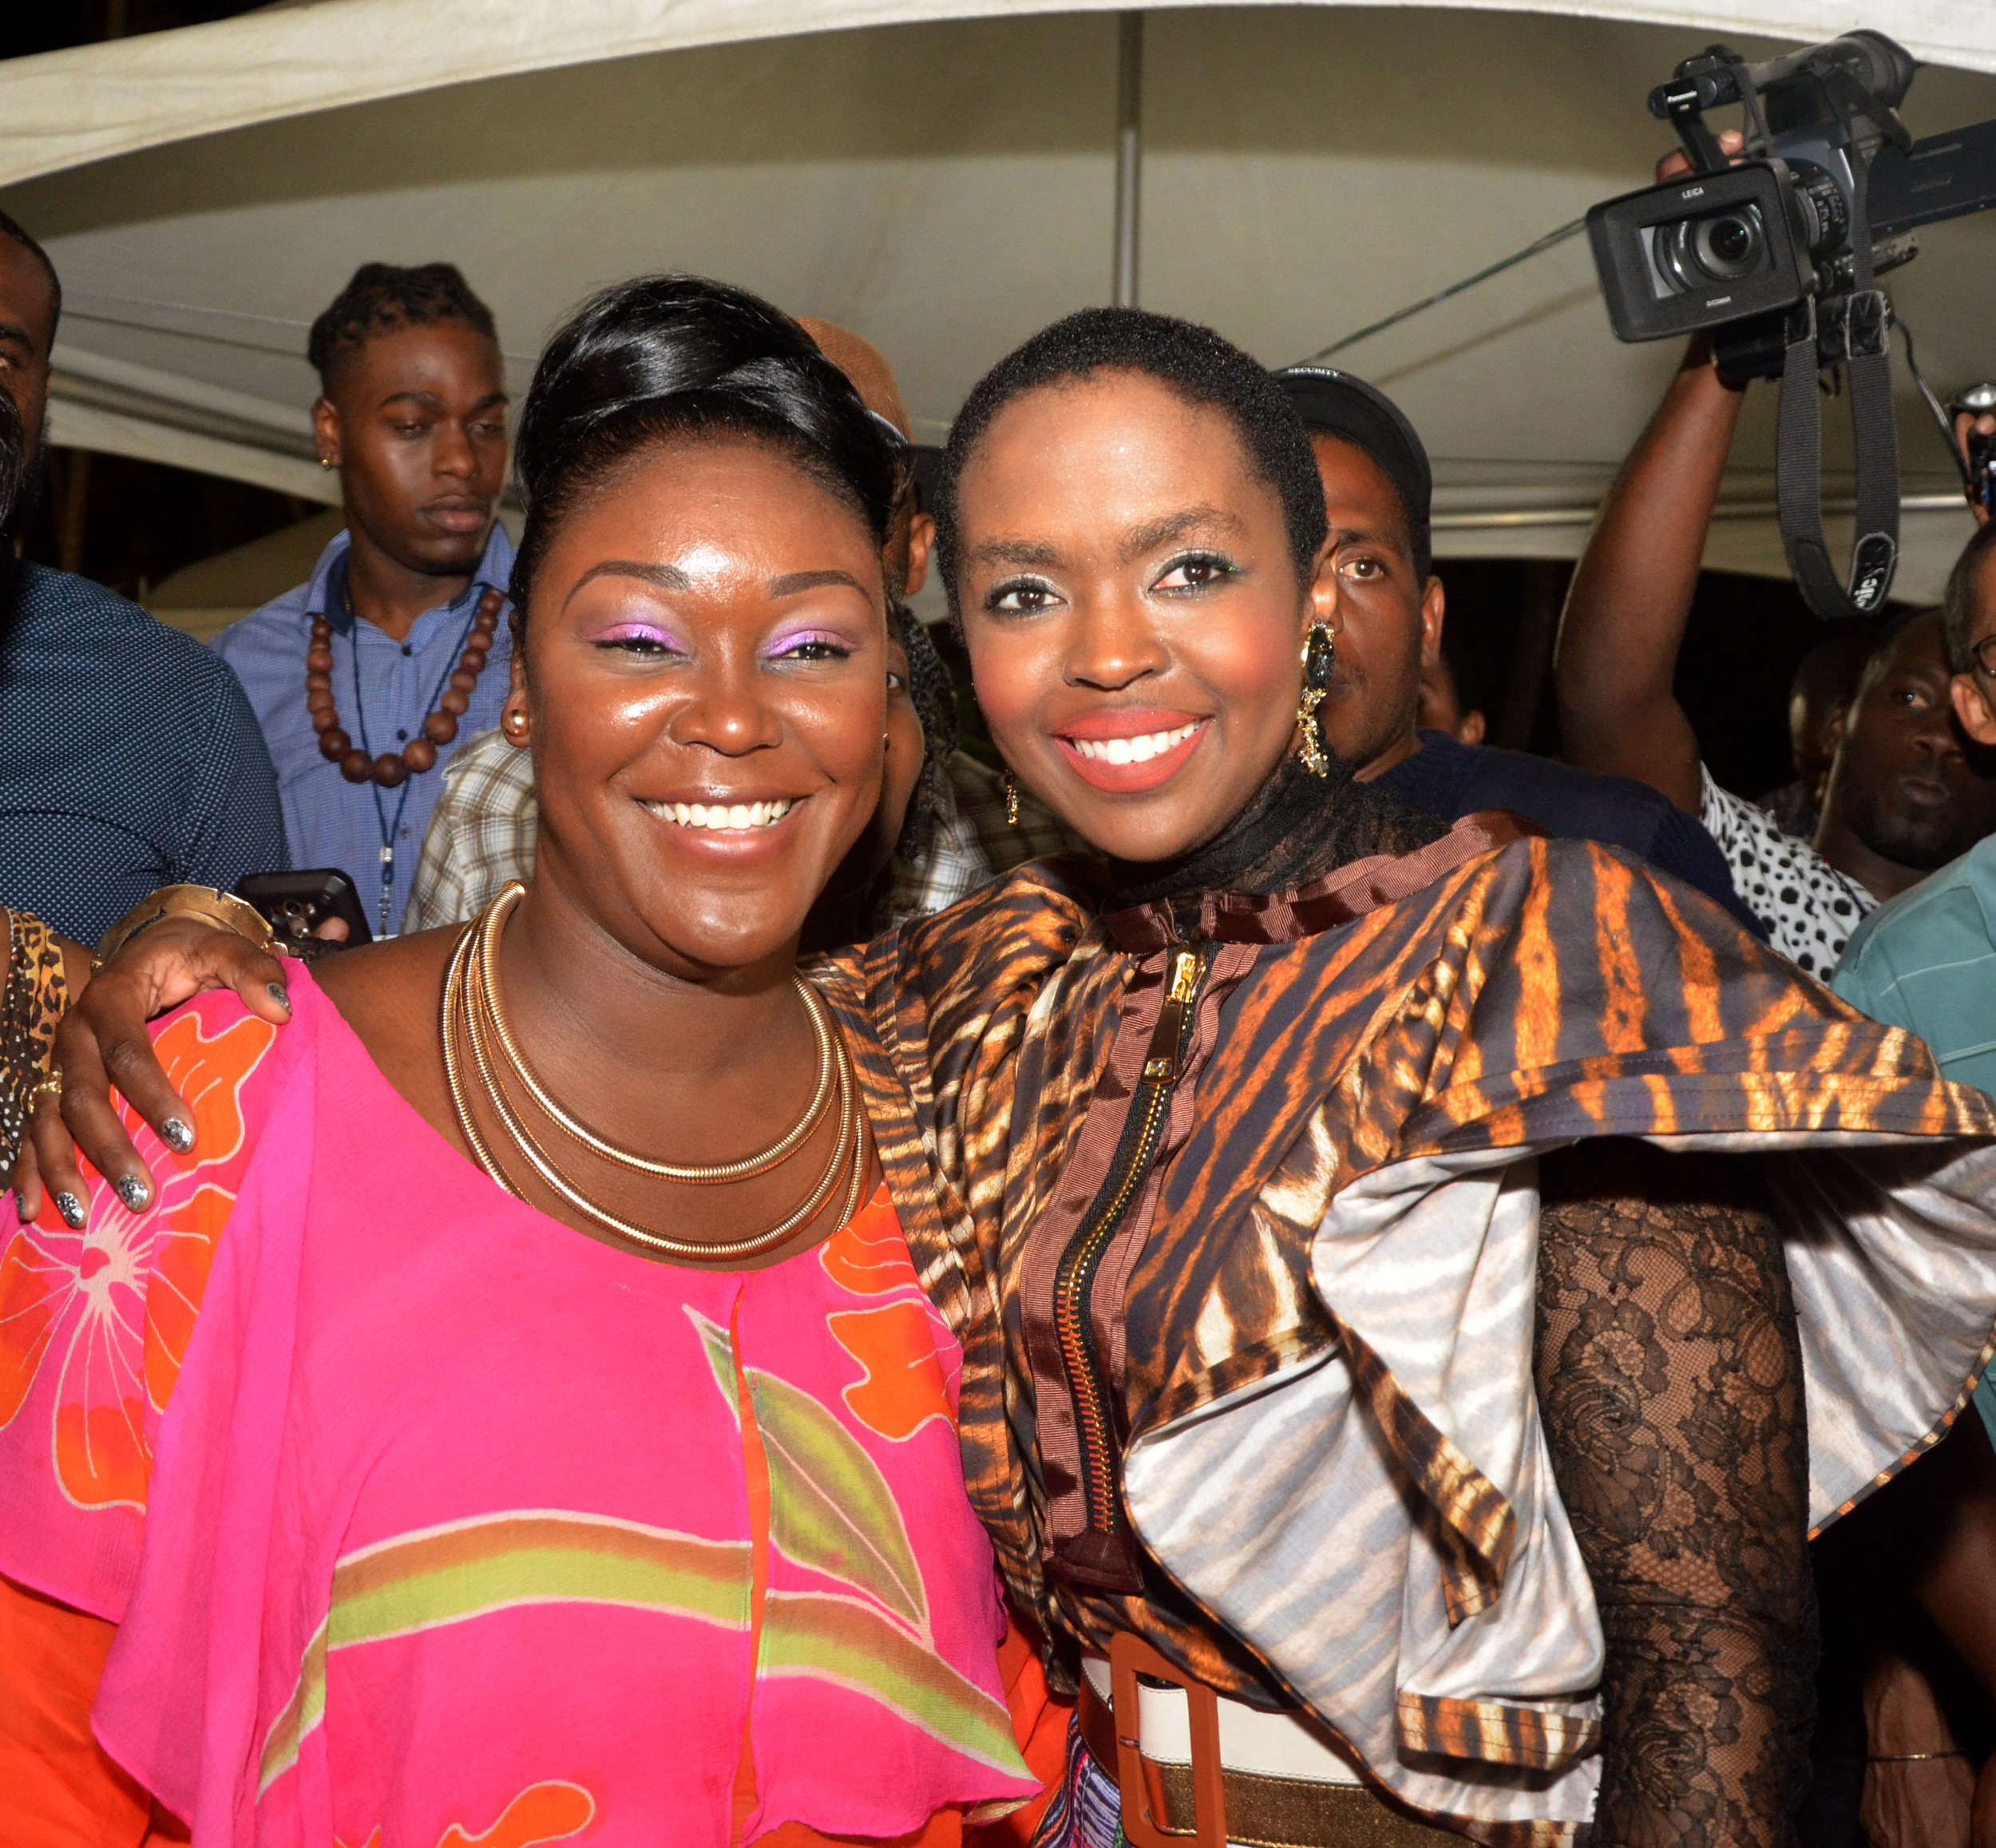 SEC.TRACEY CELESTINE AND MS LAURYN HILL1.jpg